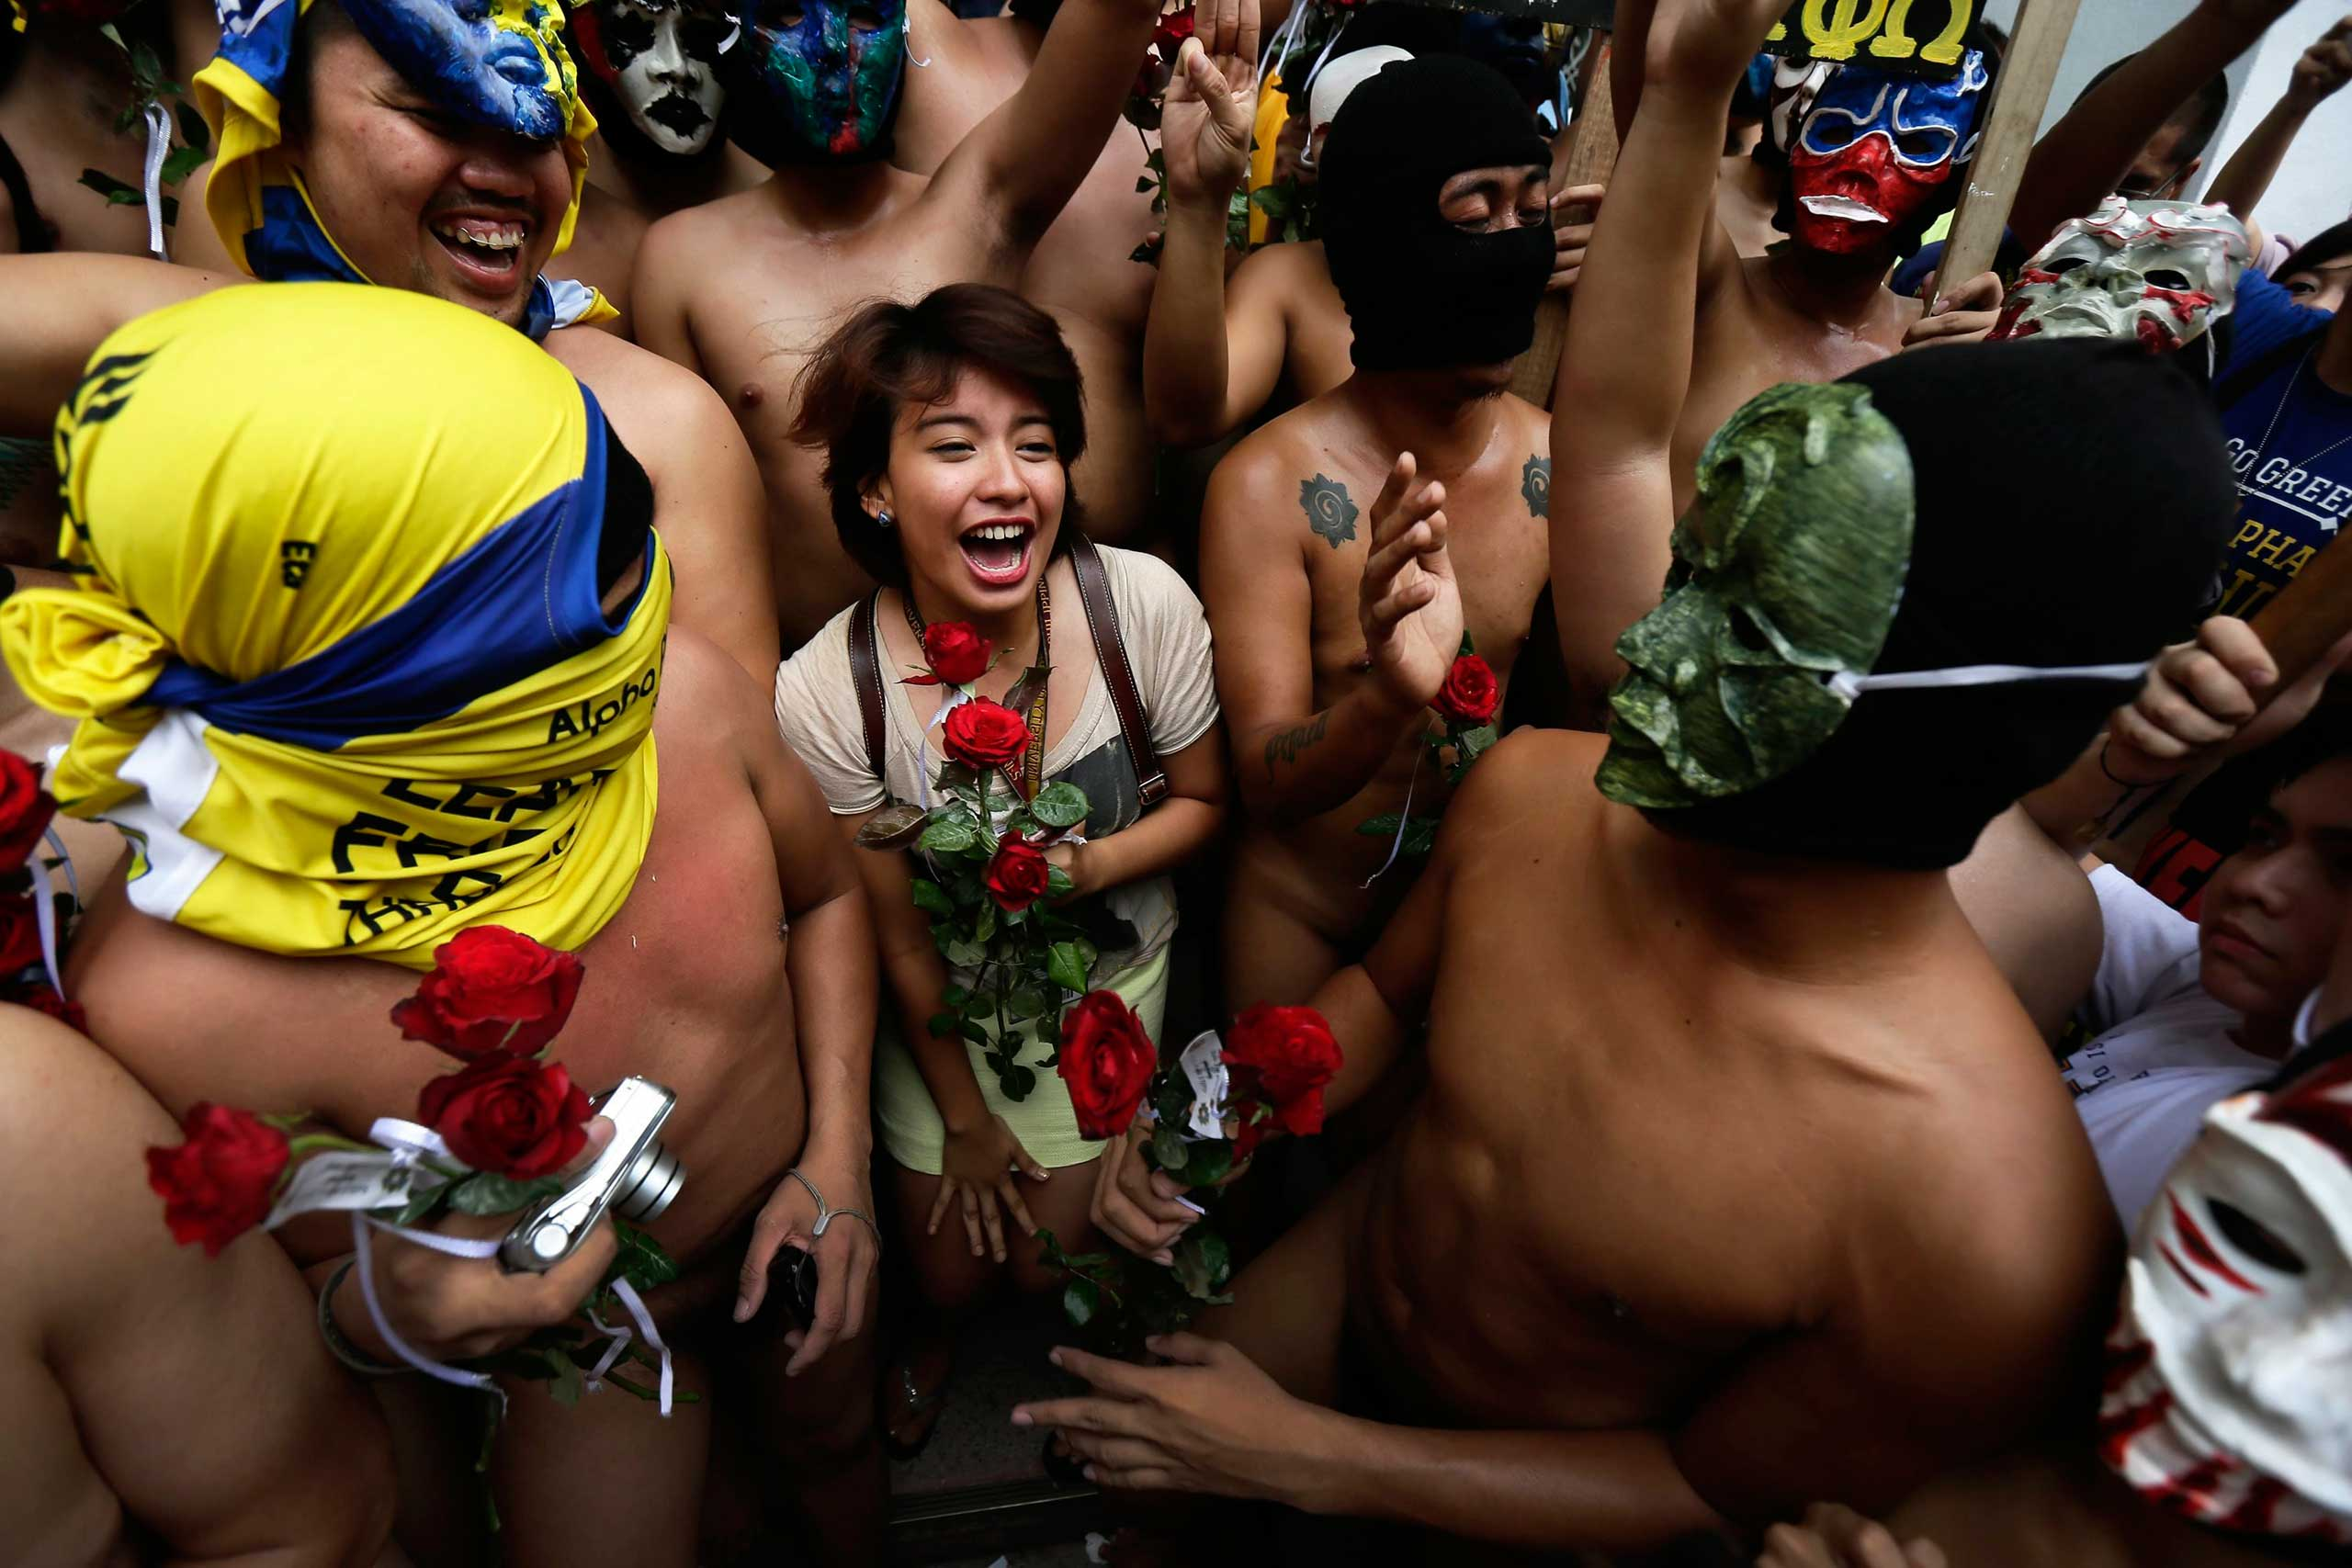 Dec. 12, 2014. Filipino student Katrina Tapia (C) reacts while being surrounded by members of Alpha Phi Omega (APO) fraternity during the annual 'Oblation run' inside the University of the Philippines in Diliman, eastern Manila, Philippines.